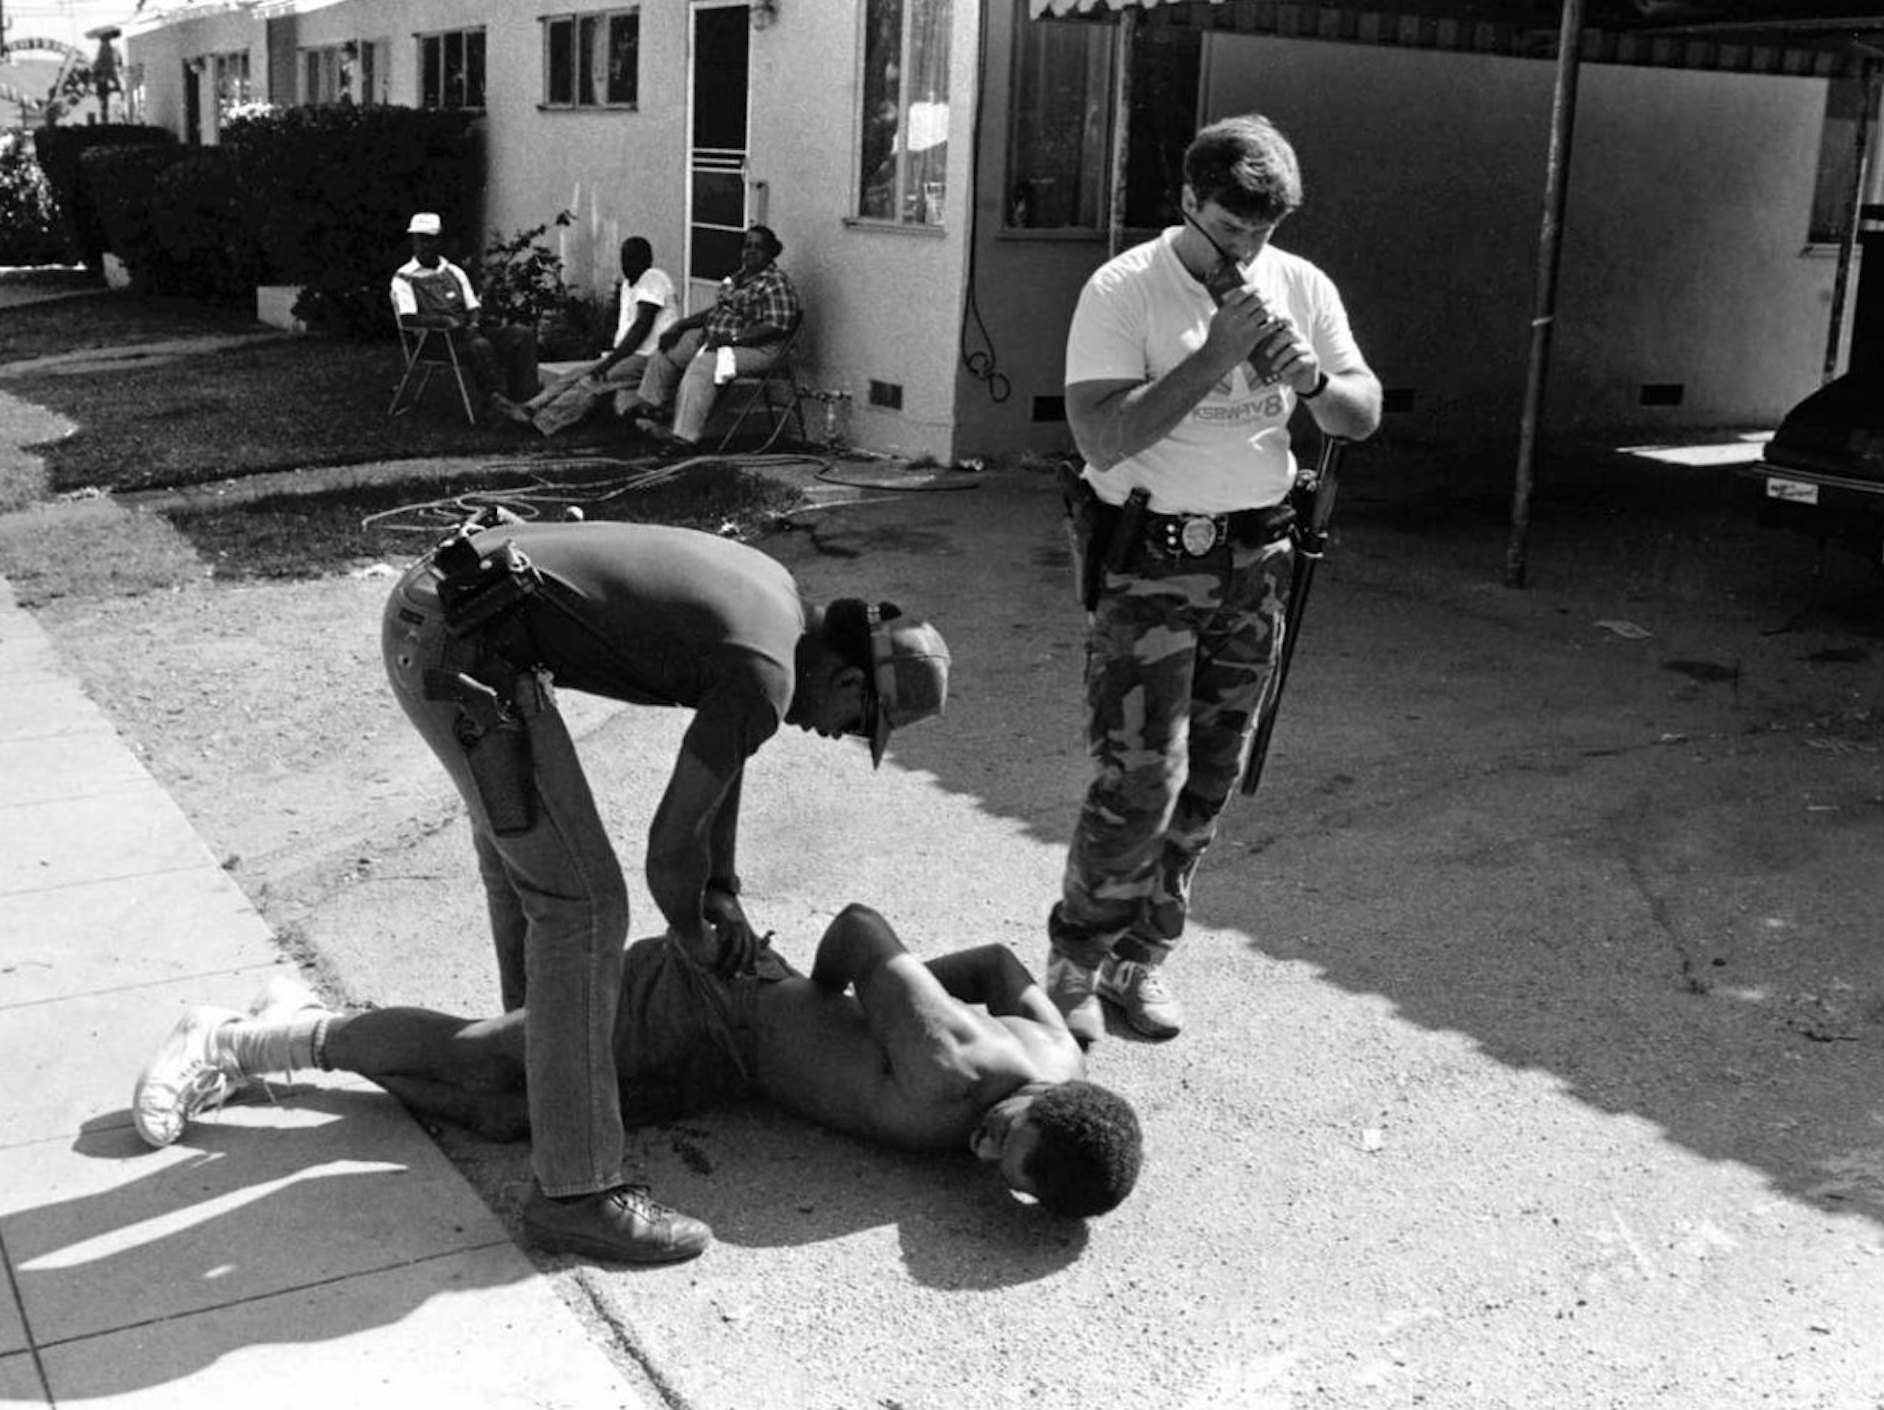 Two Pasadena police officers arrest a man suspected of selling crack-cocaine in mid 1980s Los Angeles. Source: Business Insider, William Karl Valentine